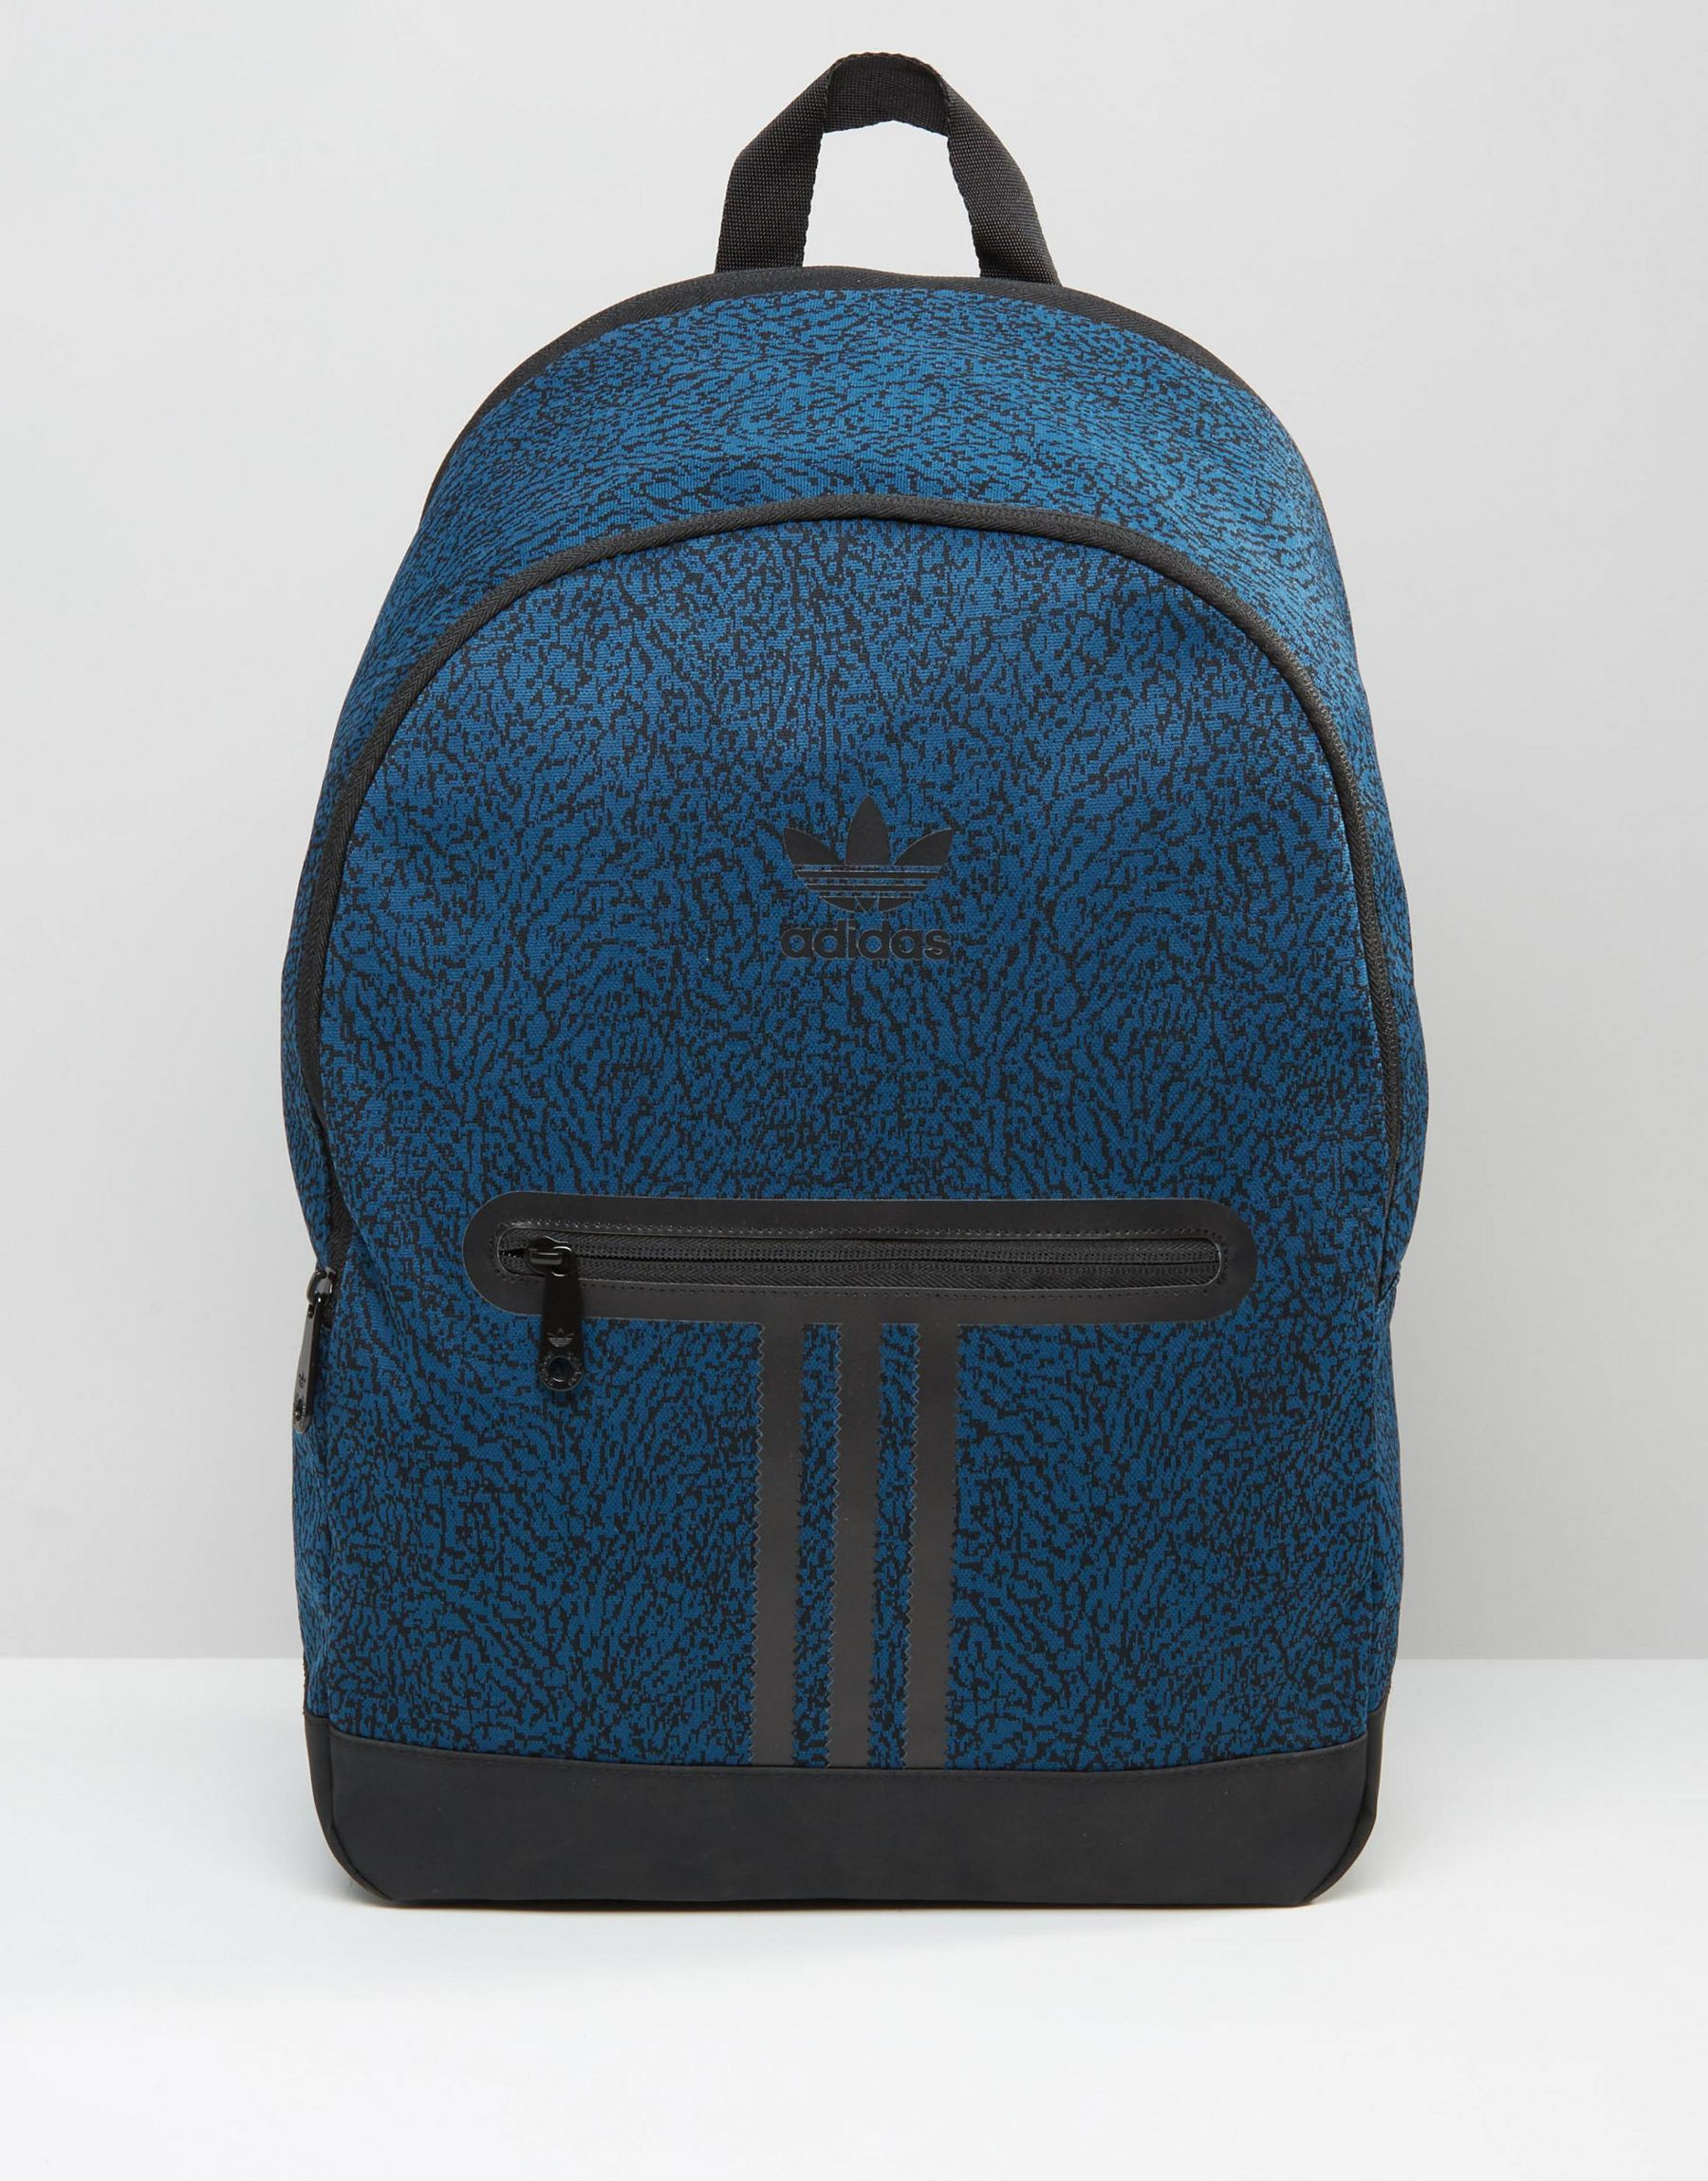 4c0376c6ee35 Lyst - adidas Originals Backpack In Blue Ay7838 in Blue for Men